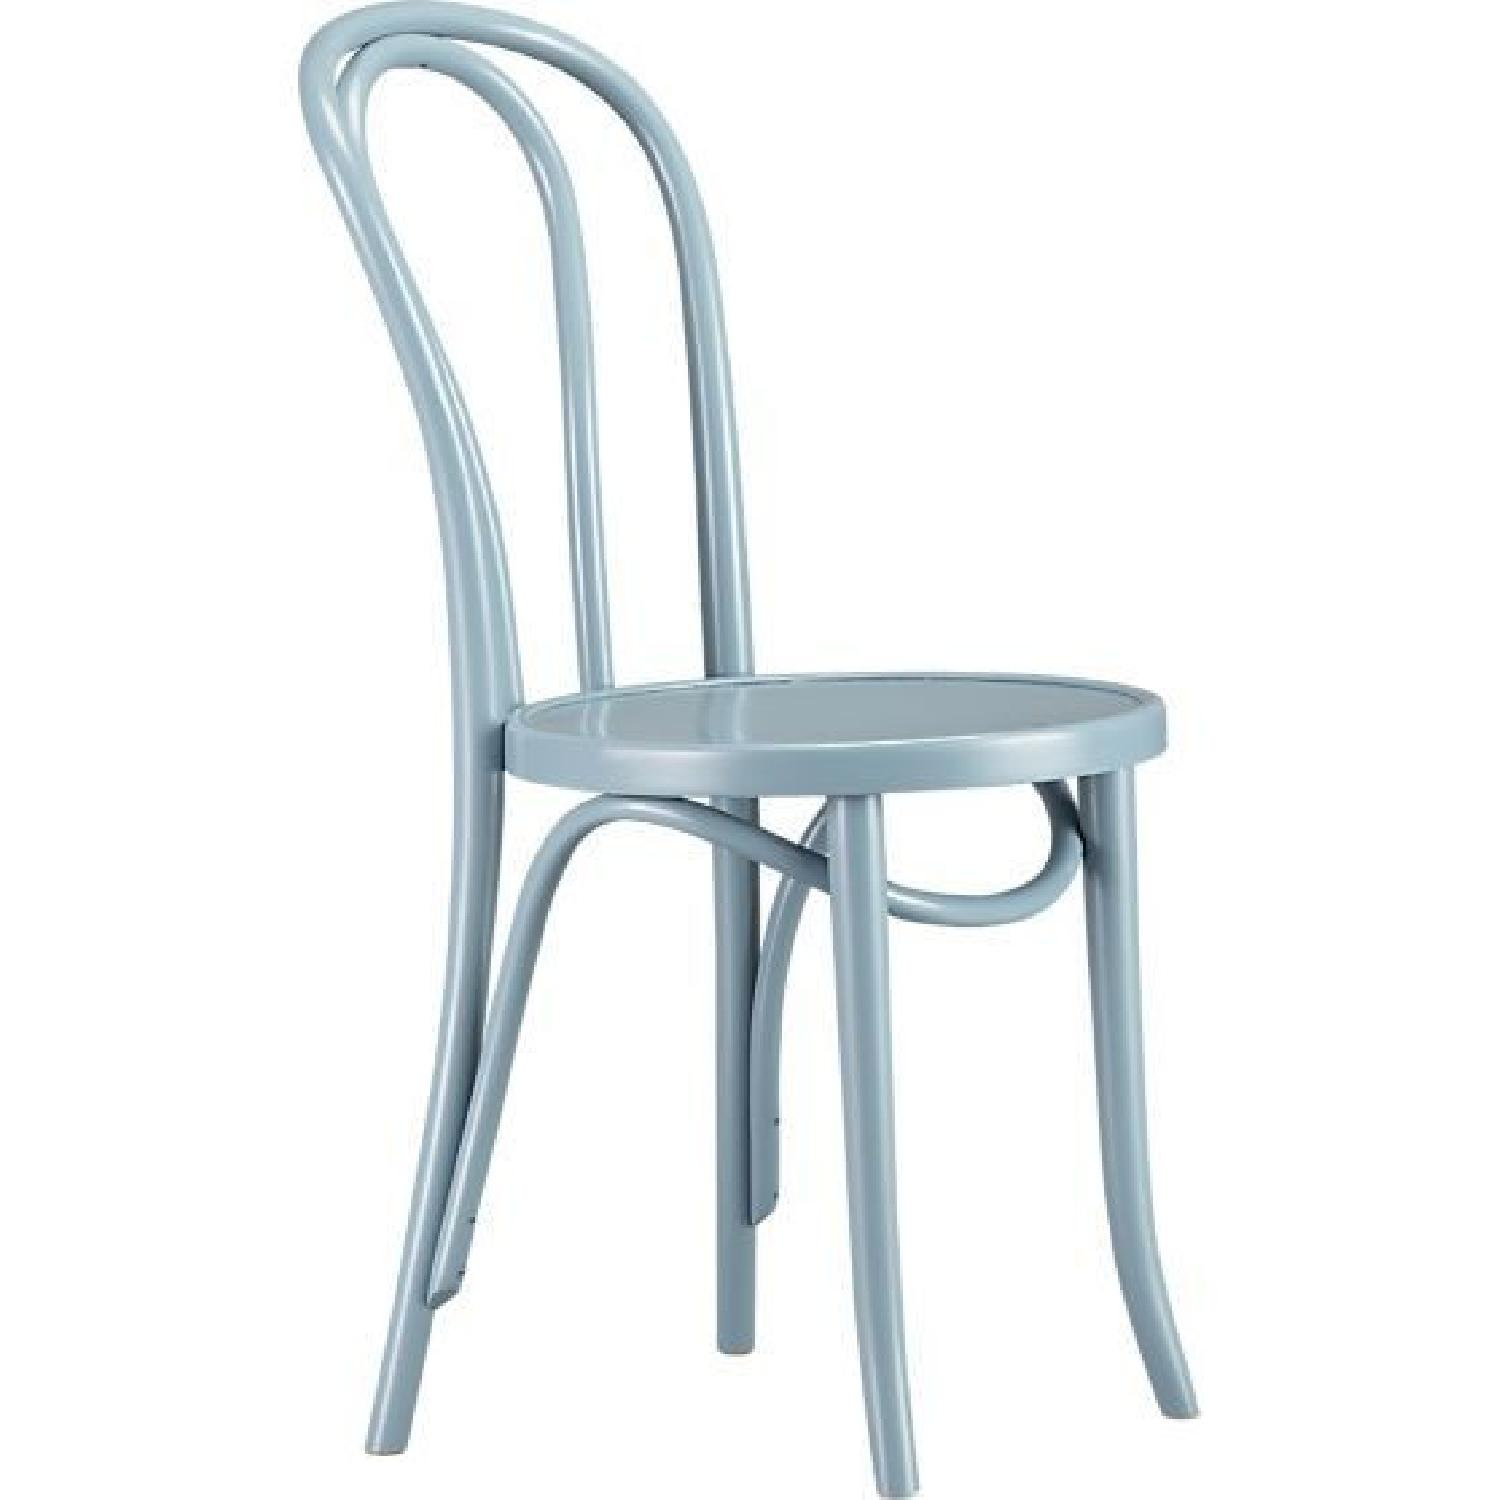 Crate & Barrel Vienna Dining Chairs